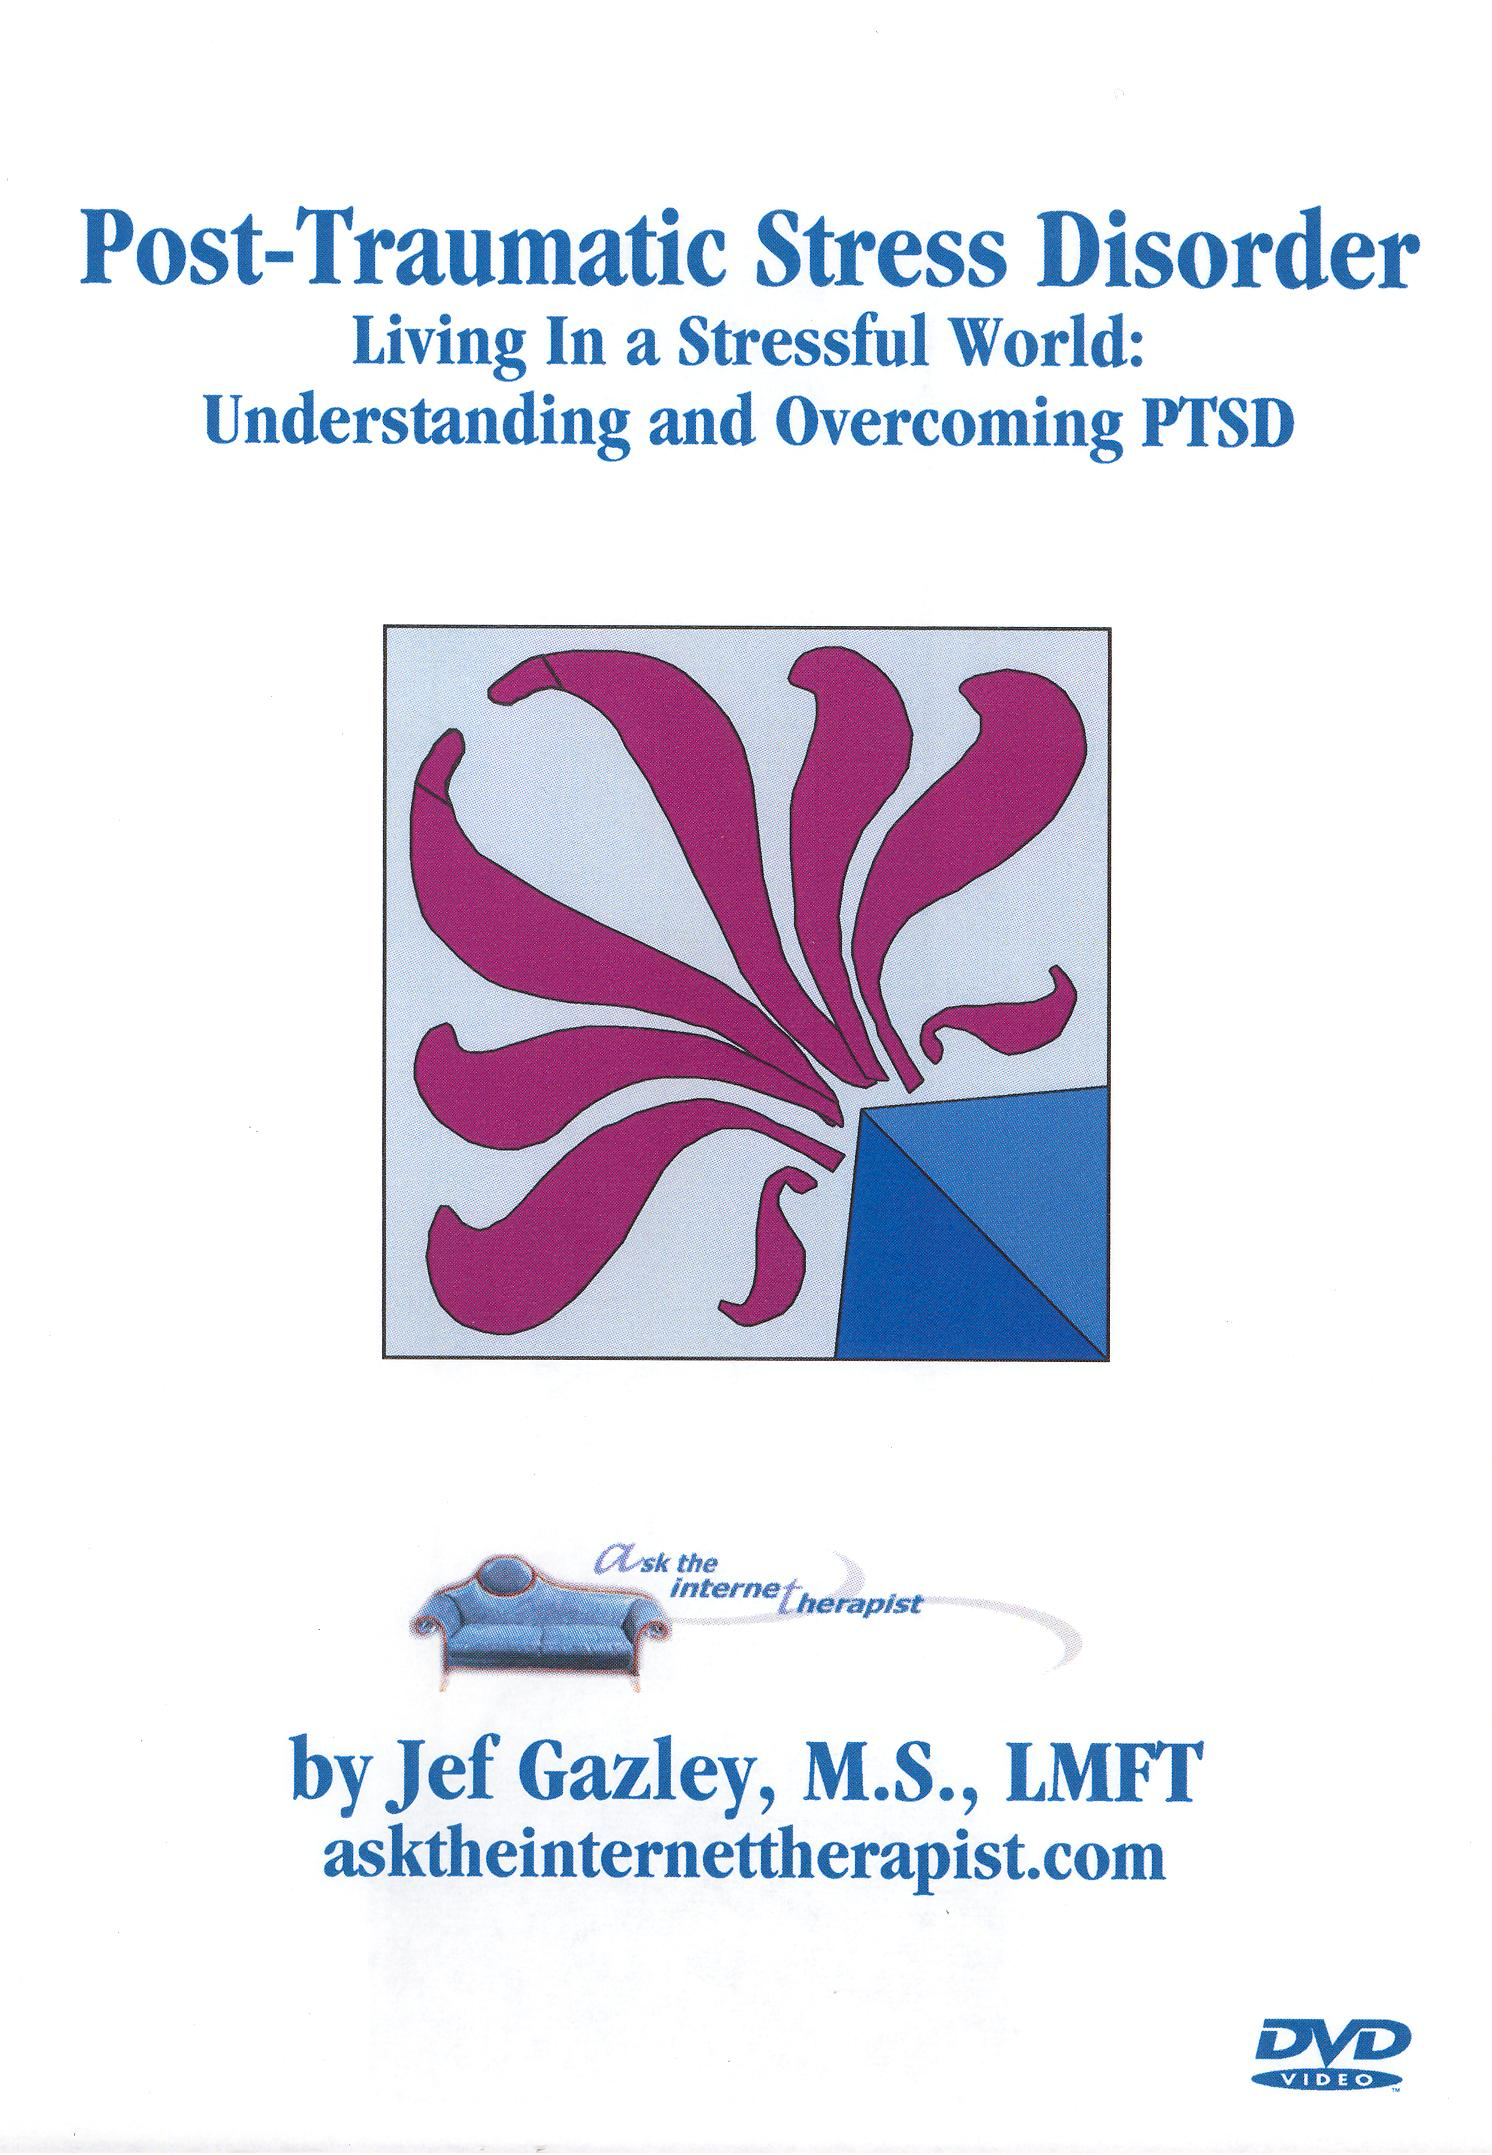 Post-Traumatic Stress Disorder: Living in a Stressful World